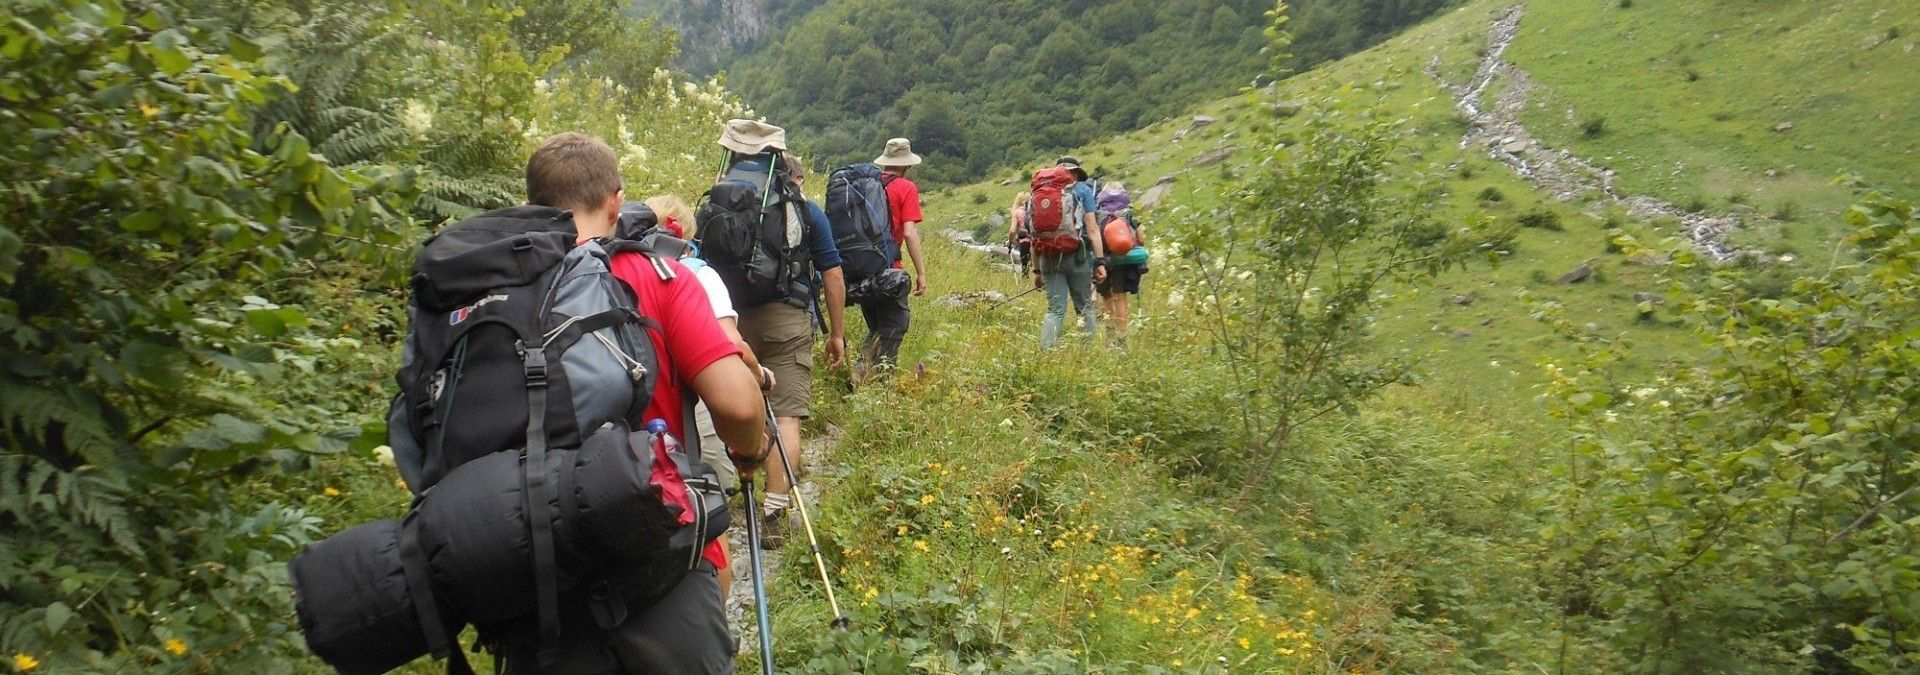 Using trekking poles to help on those demanding uphill climbs in the Pyrenees